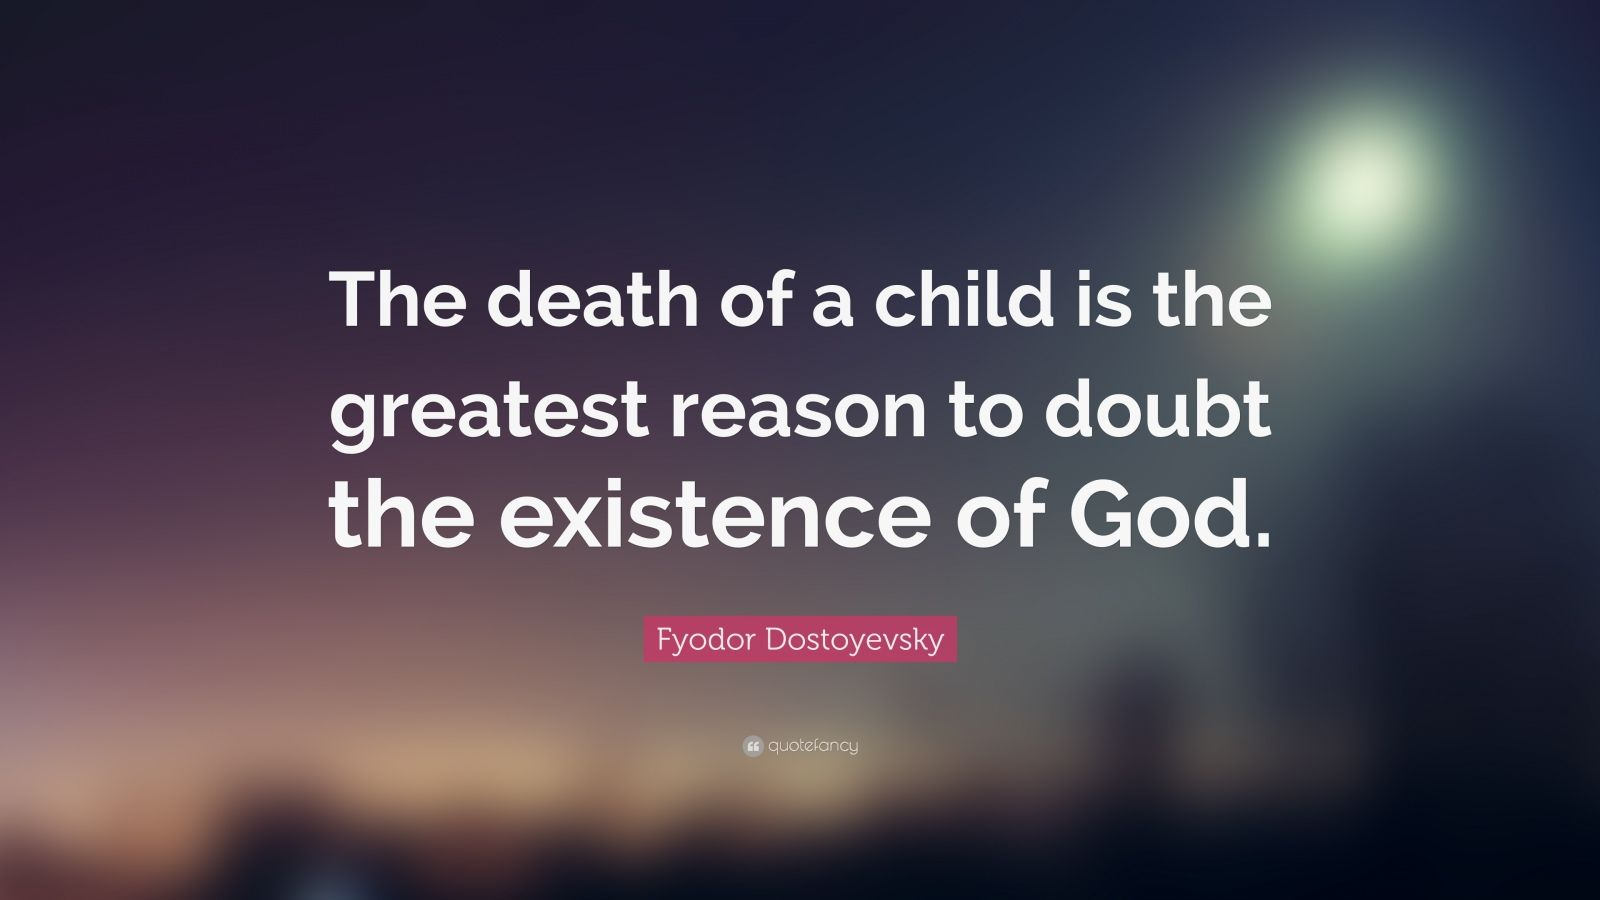 Chanakya Quotes Wallpaper Fyodor Dostoyevsky Quote The Death Of A Child Is The